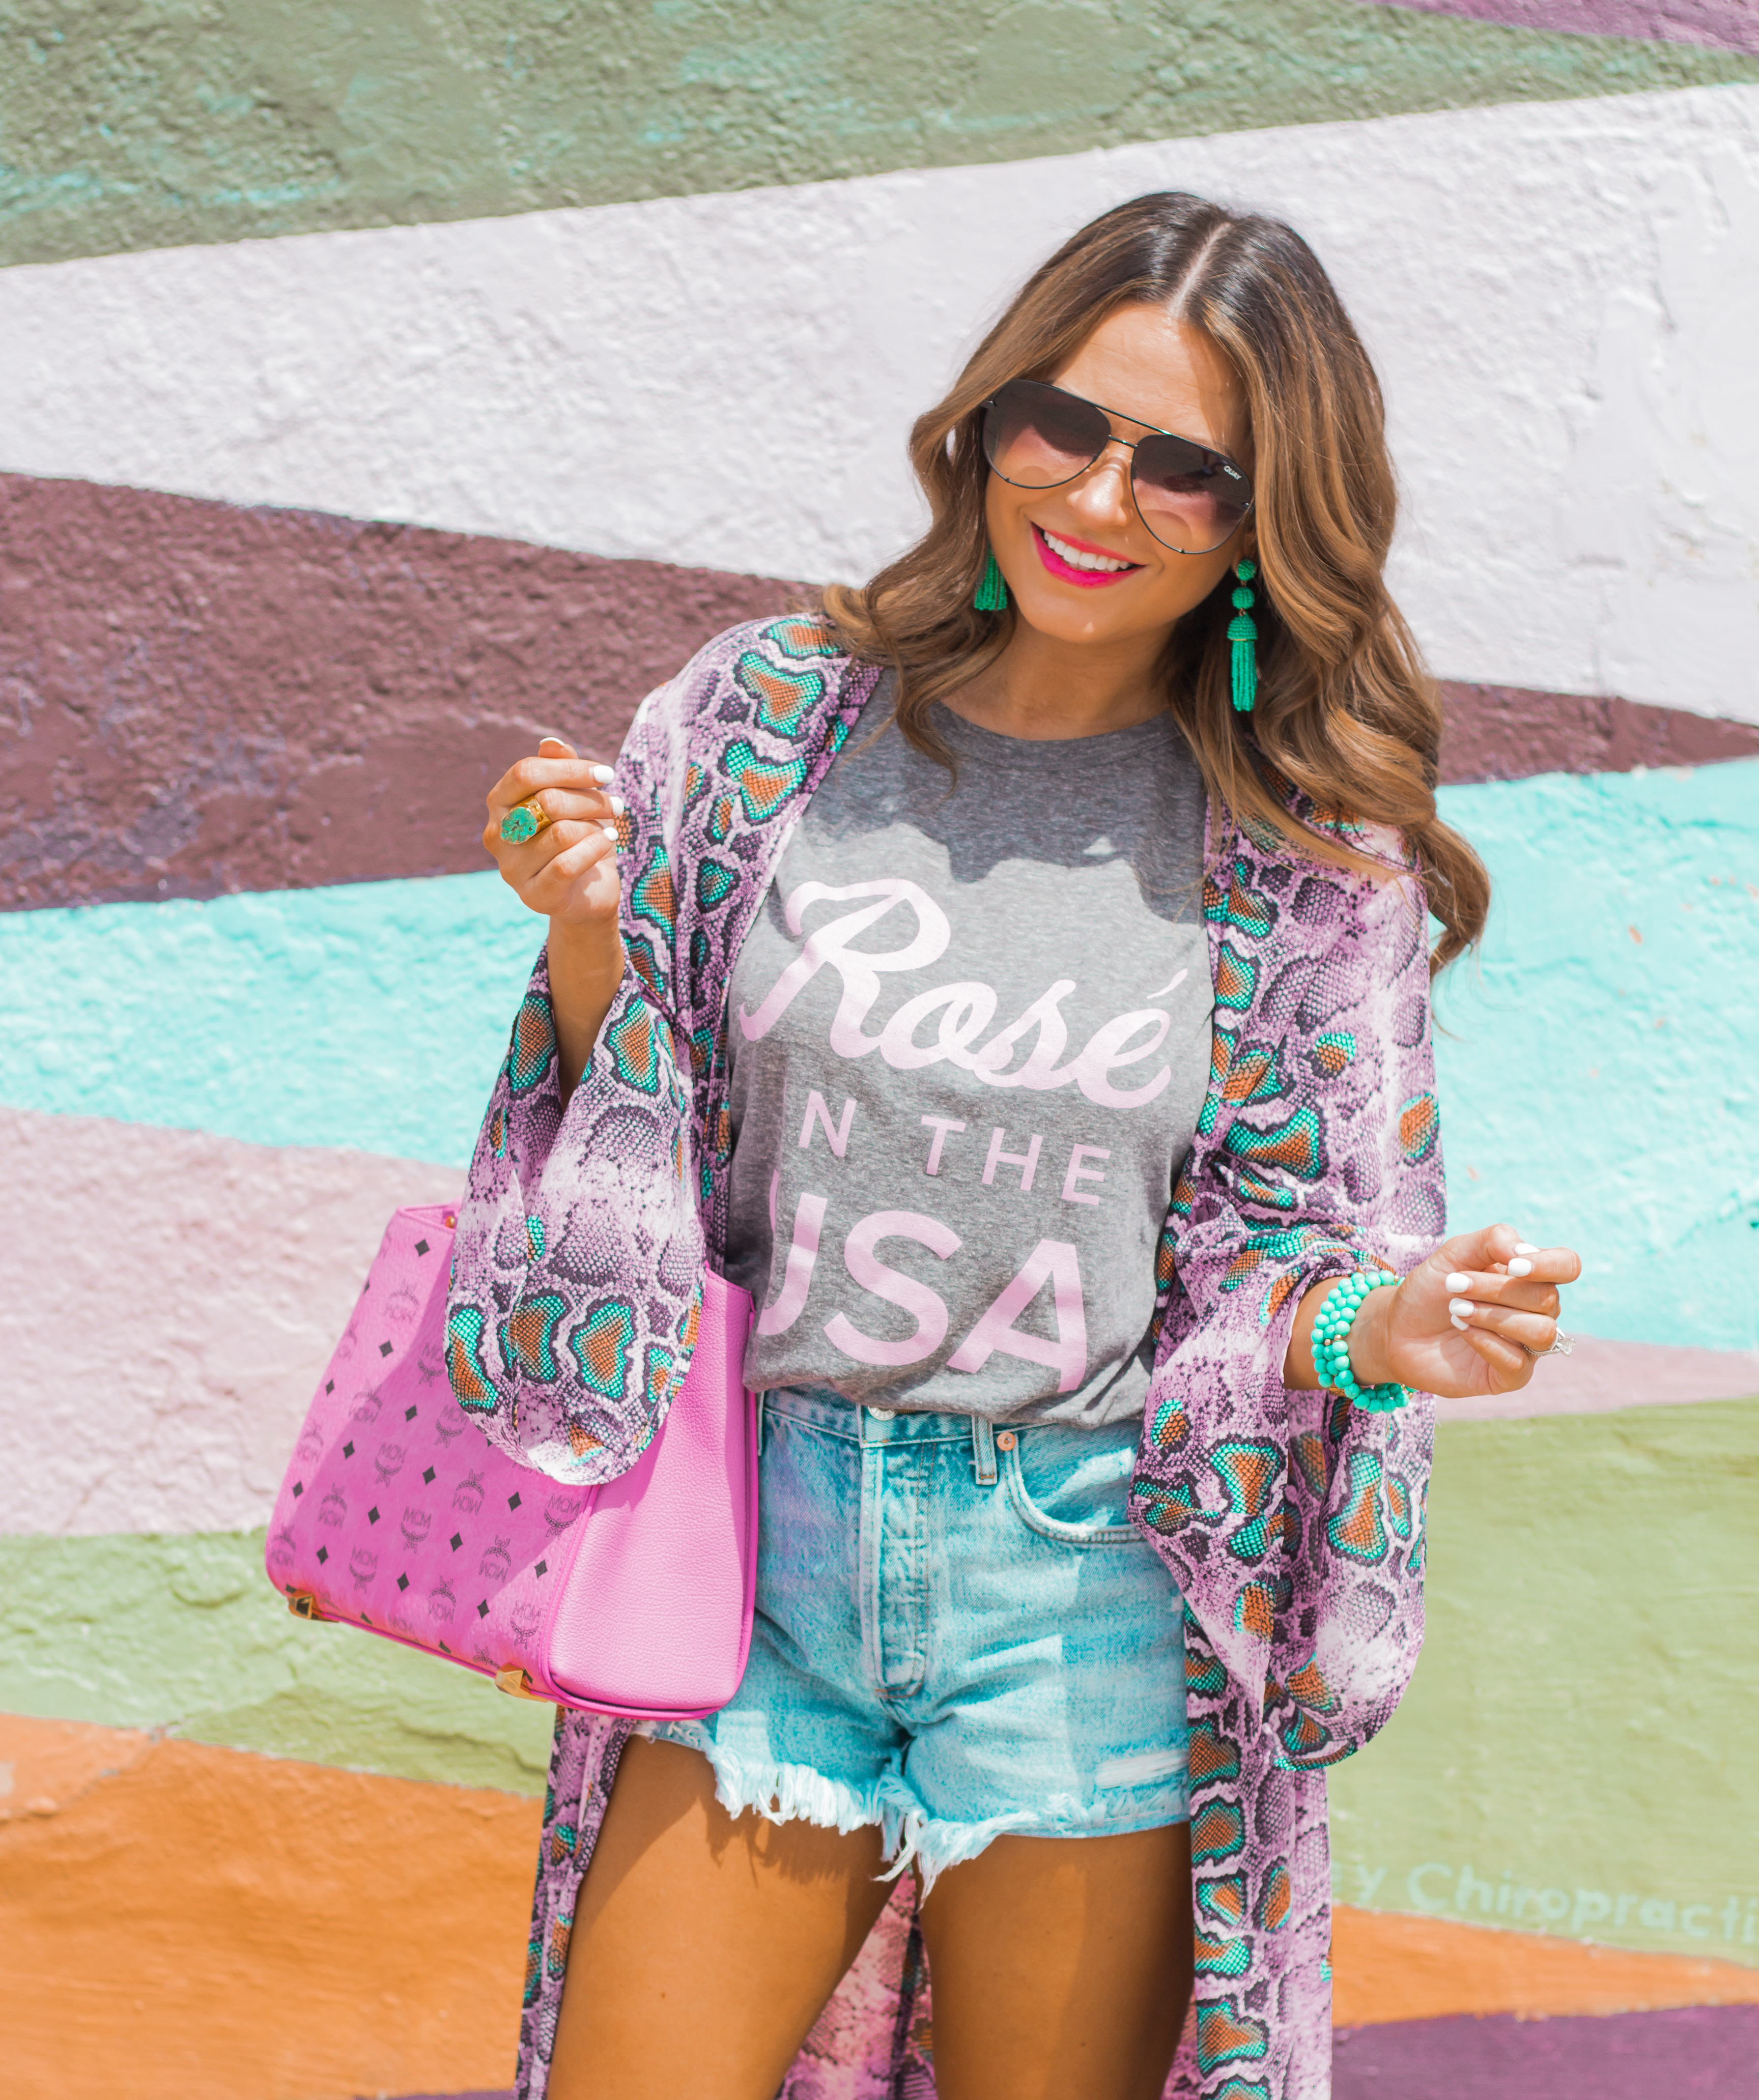 Rosé in the USA-Buddy Love-Kimono-Sugar Boutique-Women's Fashion-Summer Outfit-4th of July-Espadrille Wedges-MCM Bag-Pink Bag-Omaha Blogger-Sabby Style-Agolde Jean Shorts-Turquoise Jewelry-Quay Sunglasses-Colorful Style-Omaha-Nebraska-BaubleBar Earrings-2